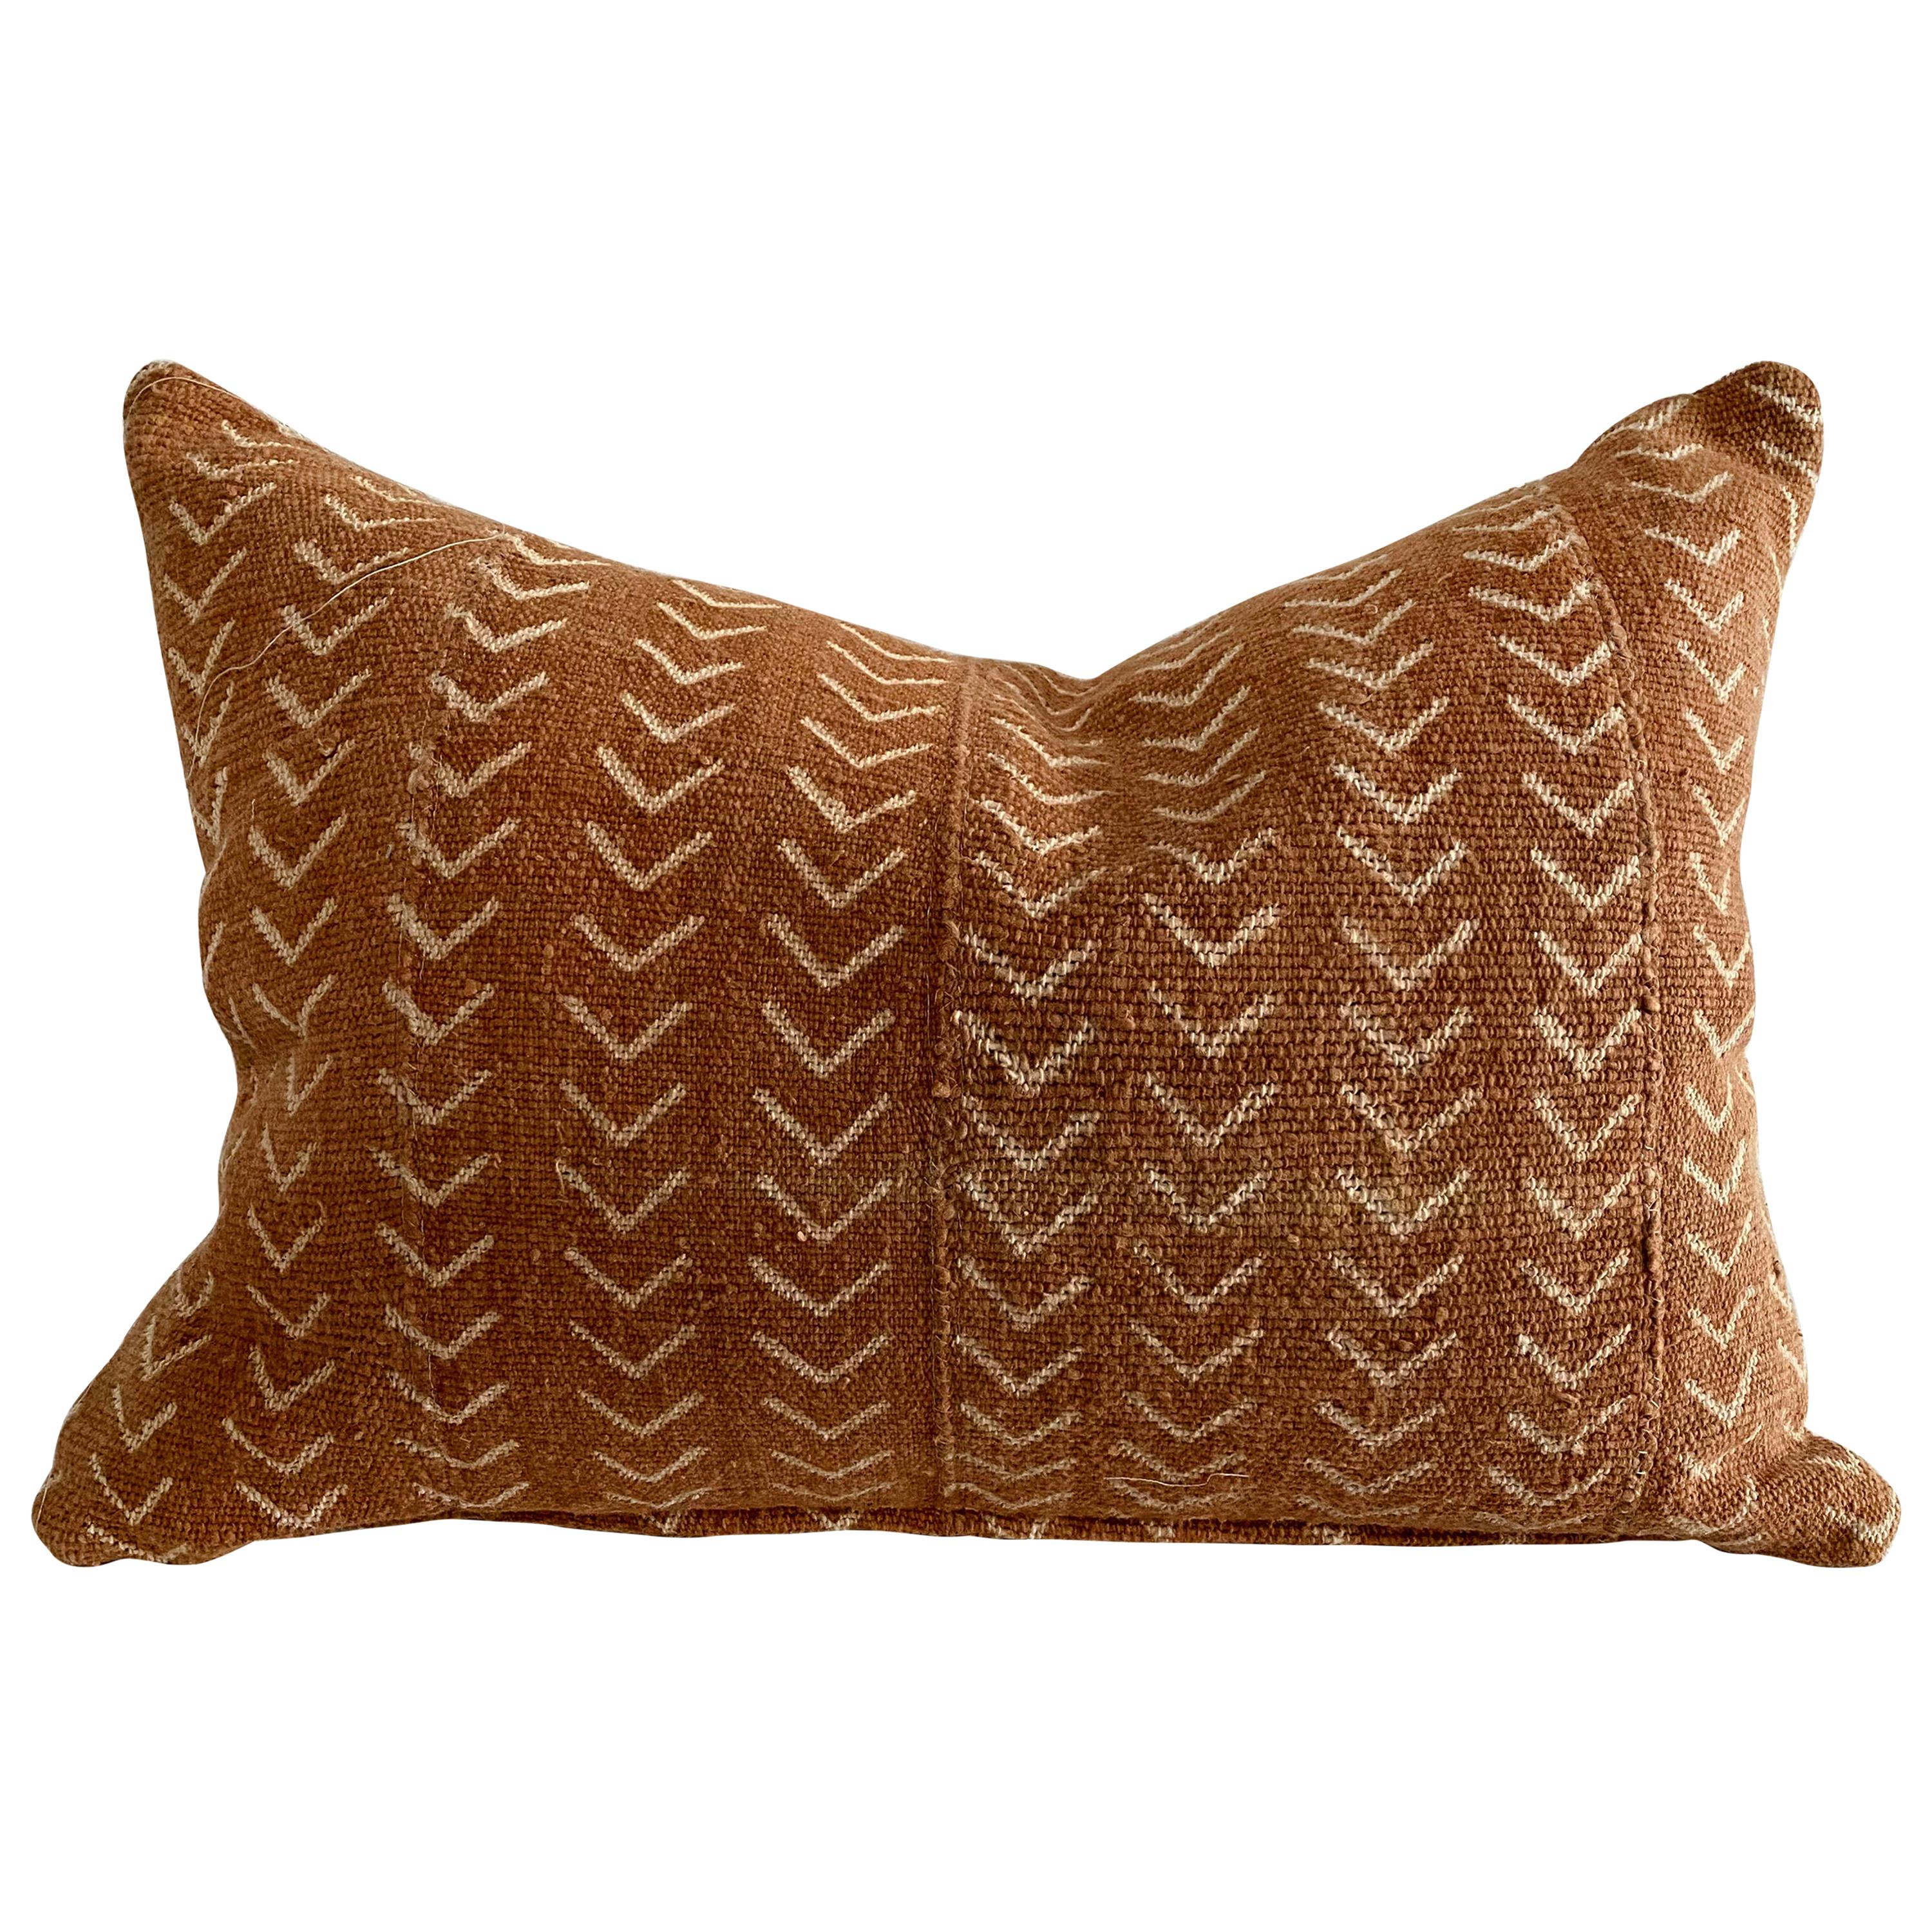 Vintage Mali Cloth African Mudcloth Pillow with Down Feather Insert